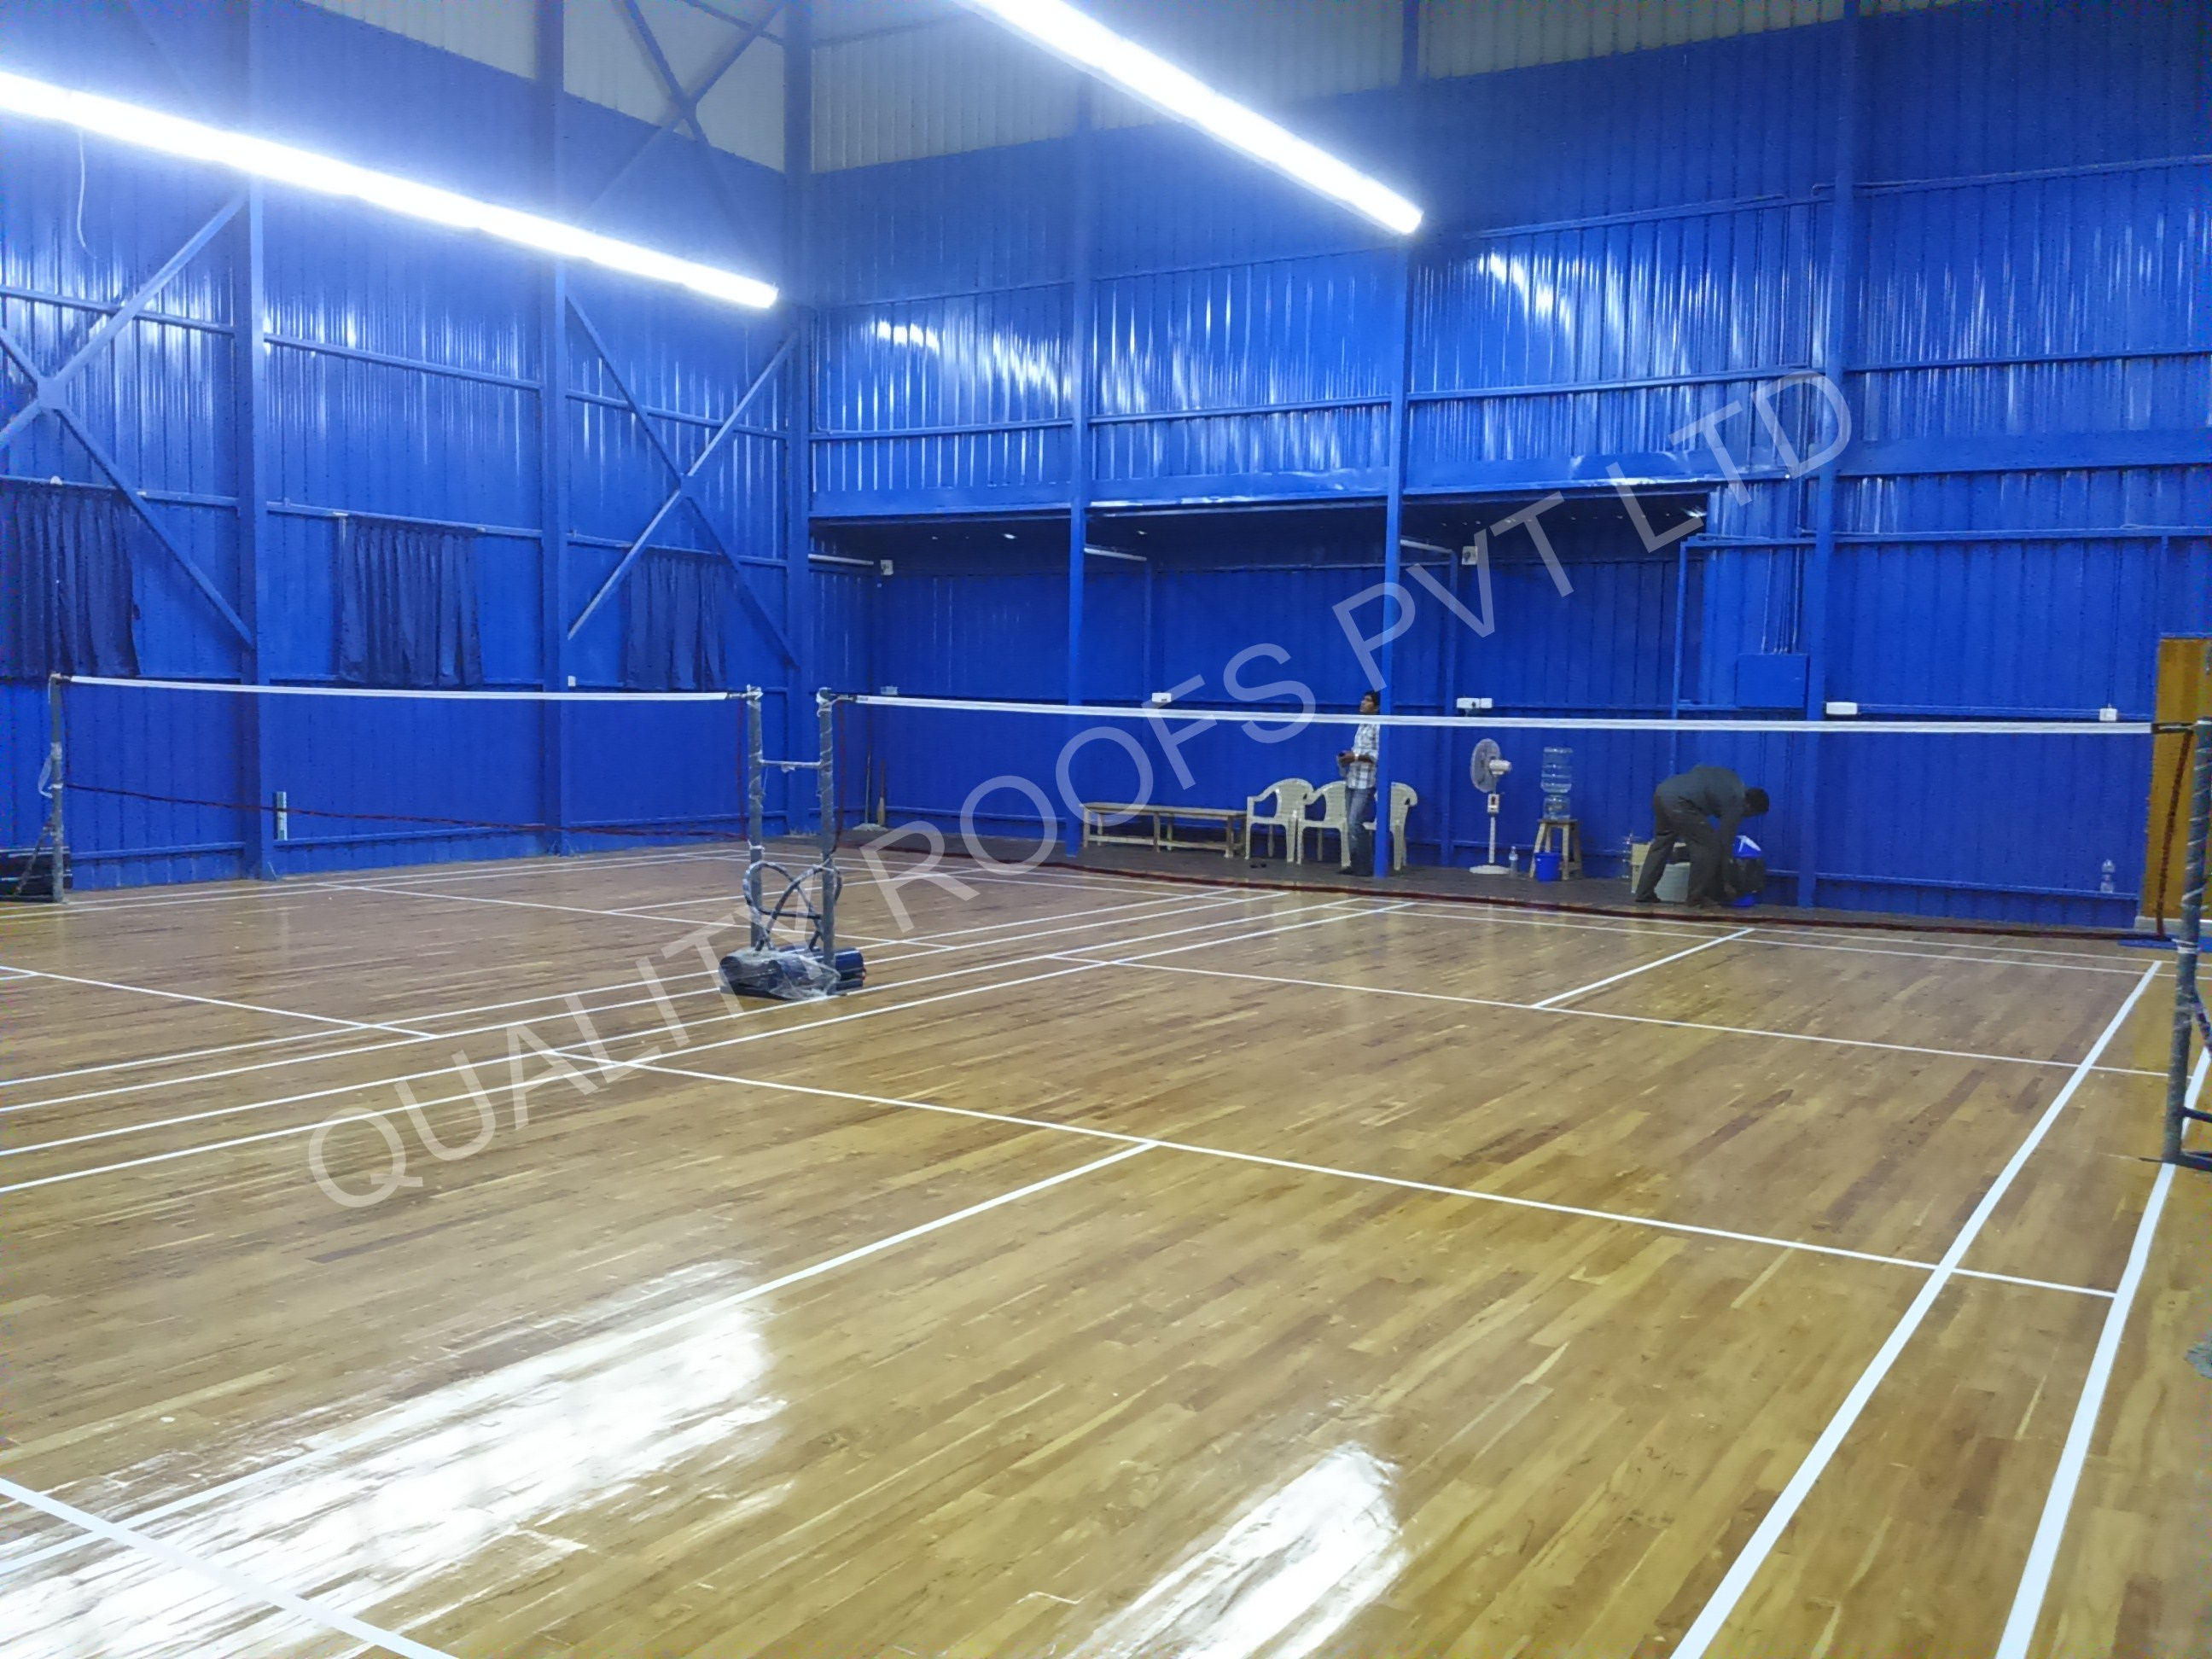 Badminton Roofing Contractors In Chennai                    We are the leading Badminton Roofing Contractors In Chennai. We offer Badminton Court Roofing Shed.These sheds are made using steel structures and roofing sheets for play ground. We can alternate into our required sheds after some years. These products are available according to client's requirements.  Hence there is always expansion of the client base. It is with great pride that the best roofing companies in Chennai claim about having won the total satisfaction of their clients because of the quality and honesty with which they work. The ever changing demand of the market is always kept in focus.